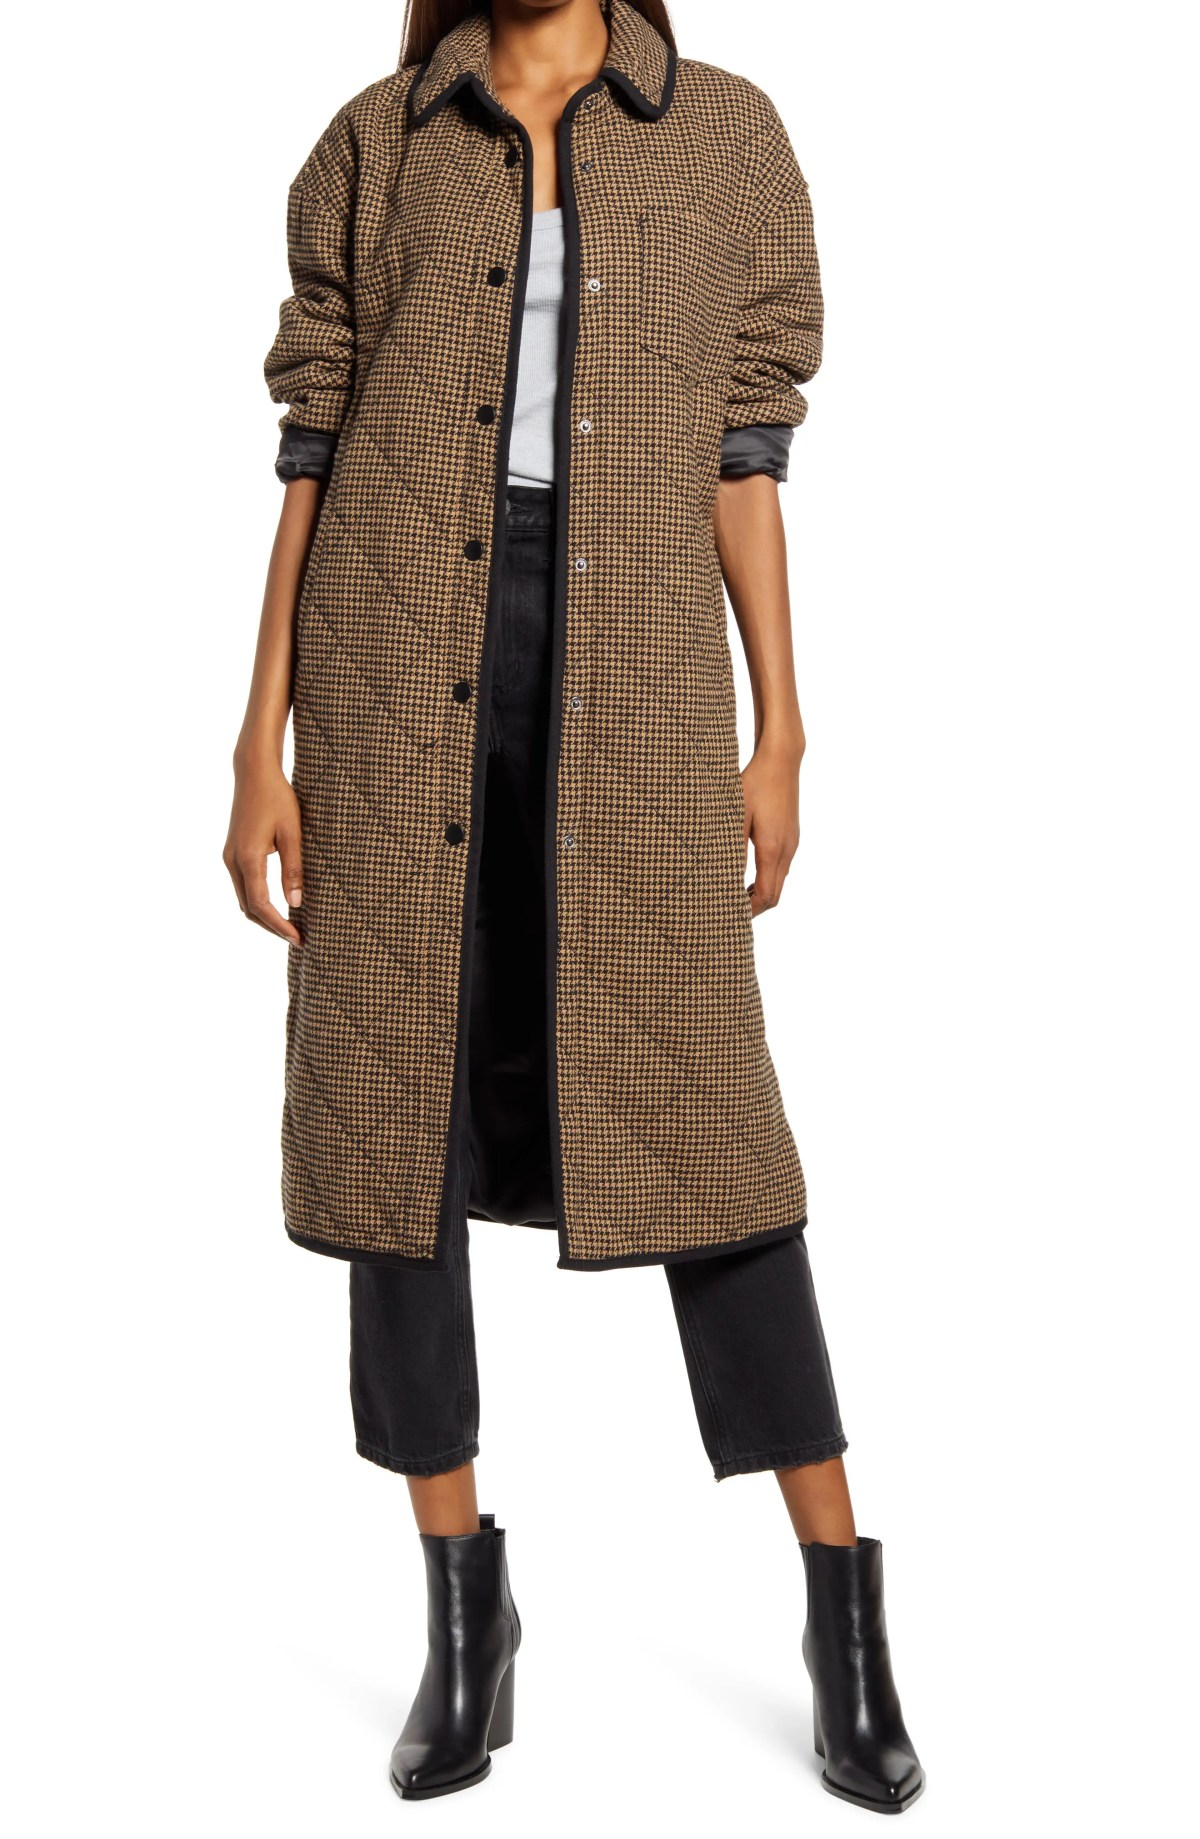 TREASURE & BOND Houndstooth Quilted Long Coat, Main, color, BLACK- TAN HOUNDSTOOTH